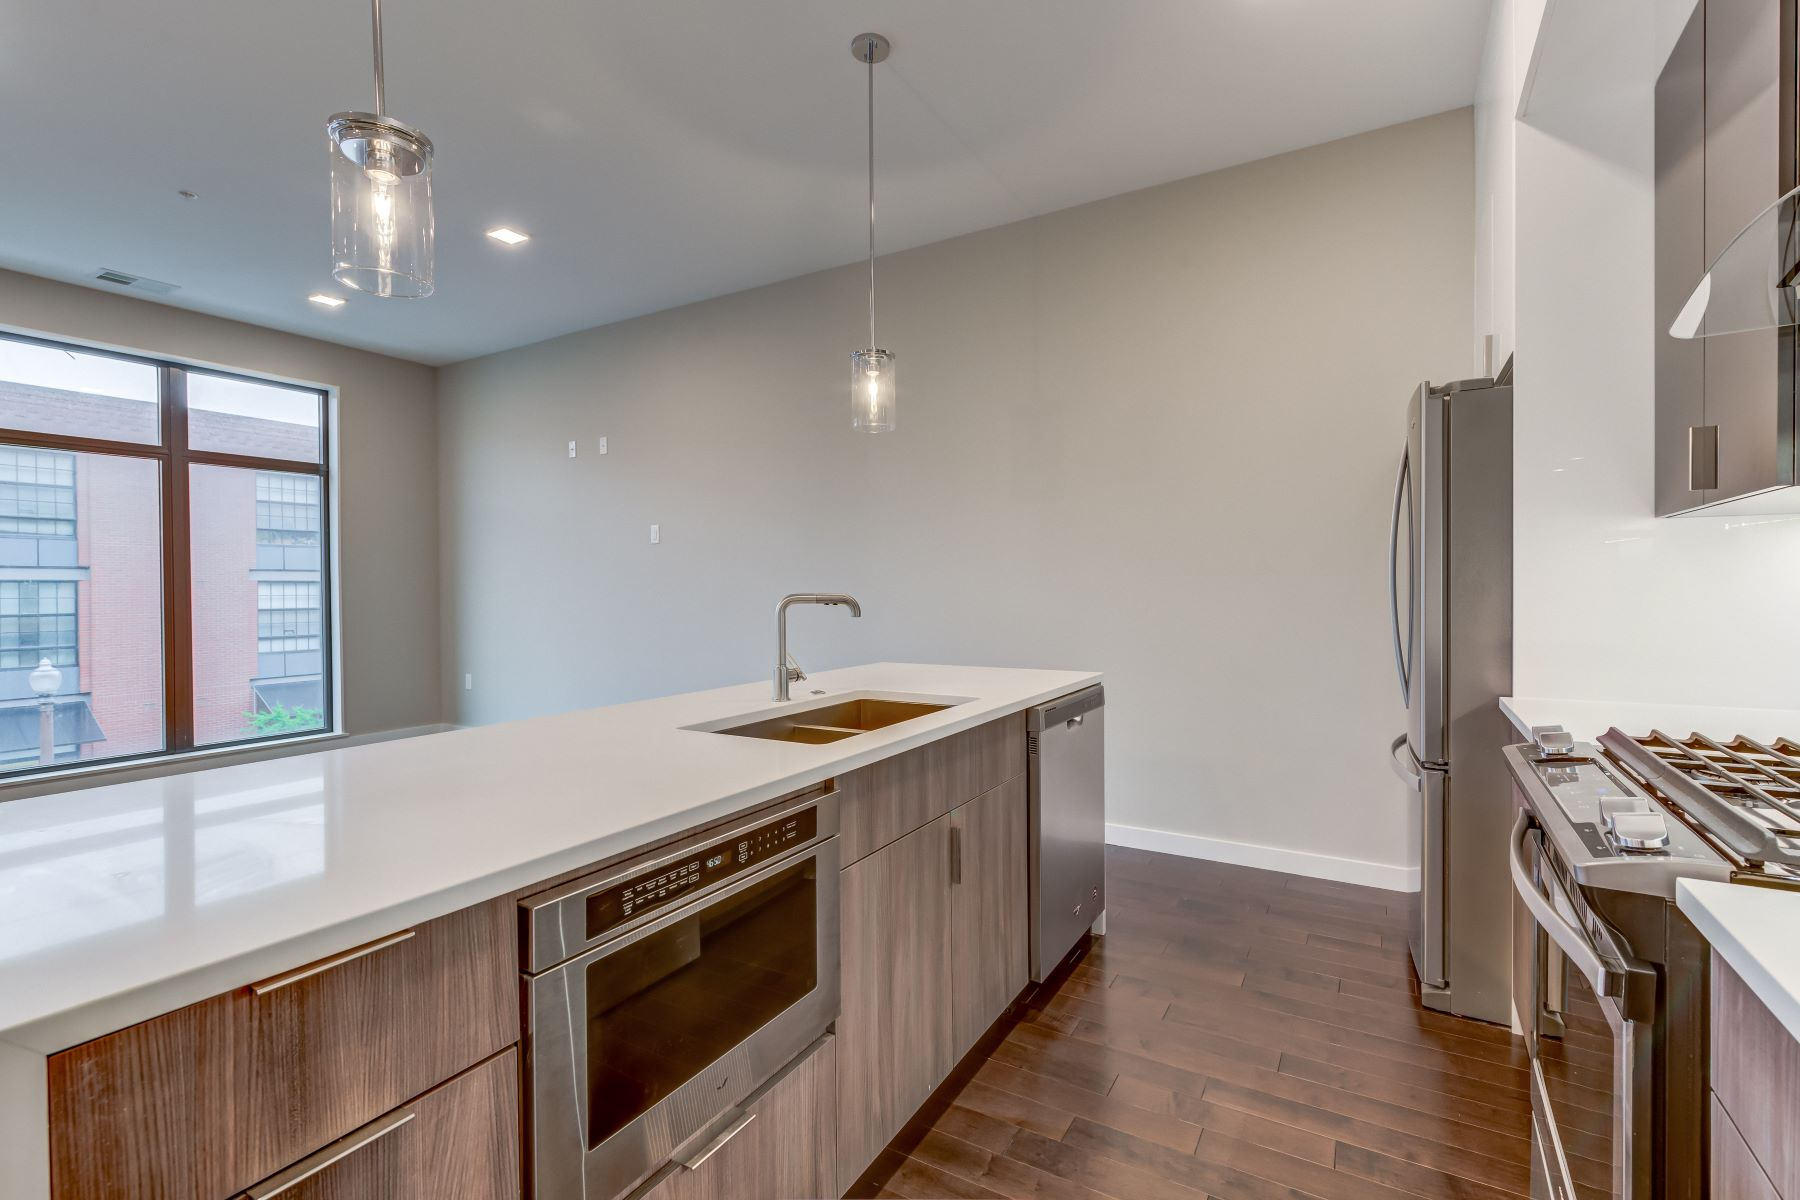 Additional photo for property listing at 4101 Laclede Ave # 204 St. Louis, Missouri 63108 United States